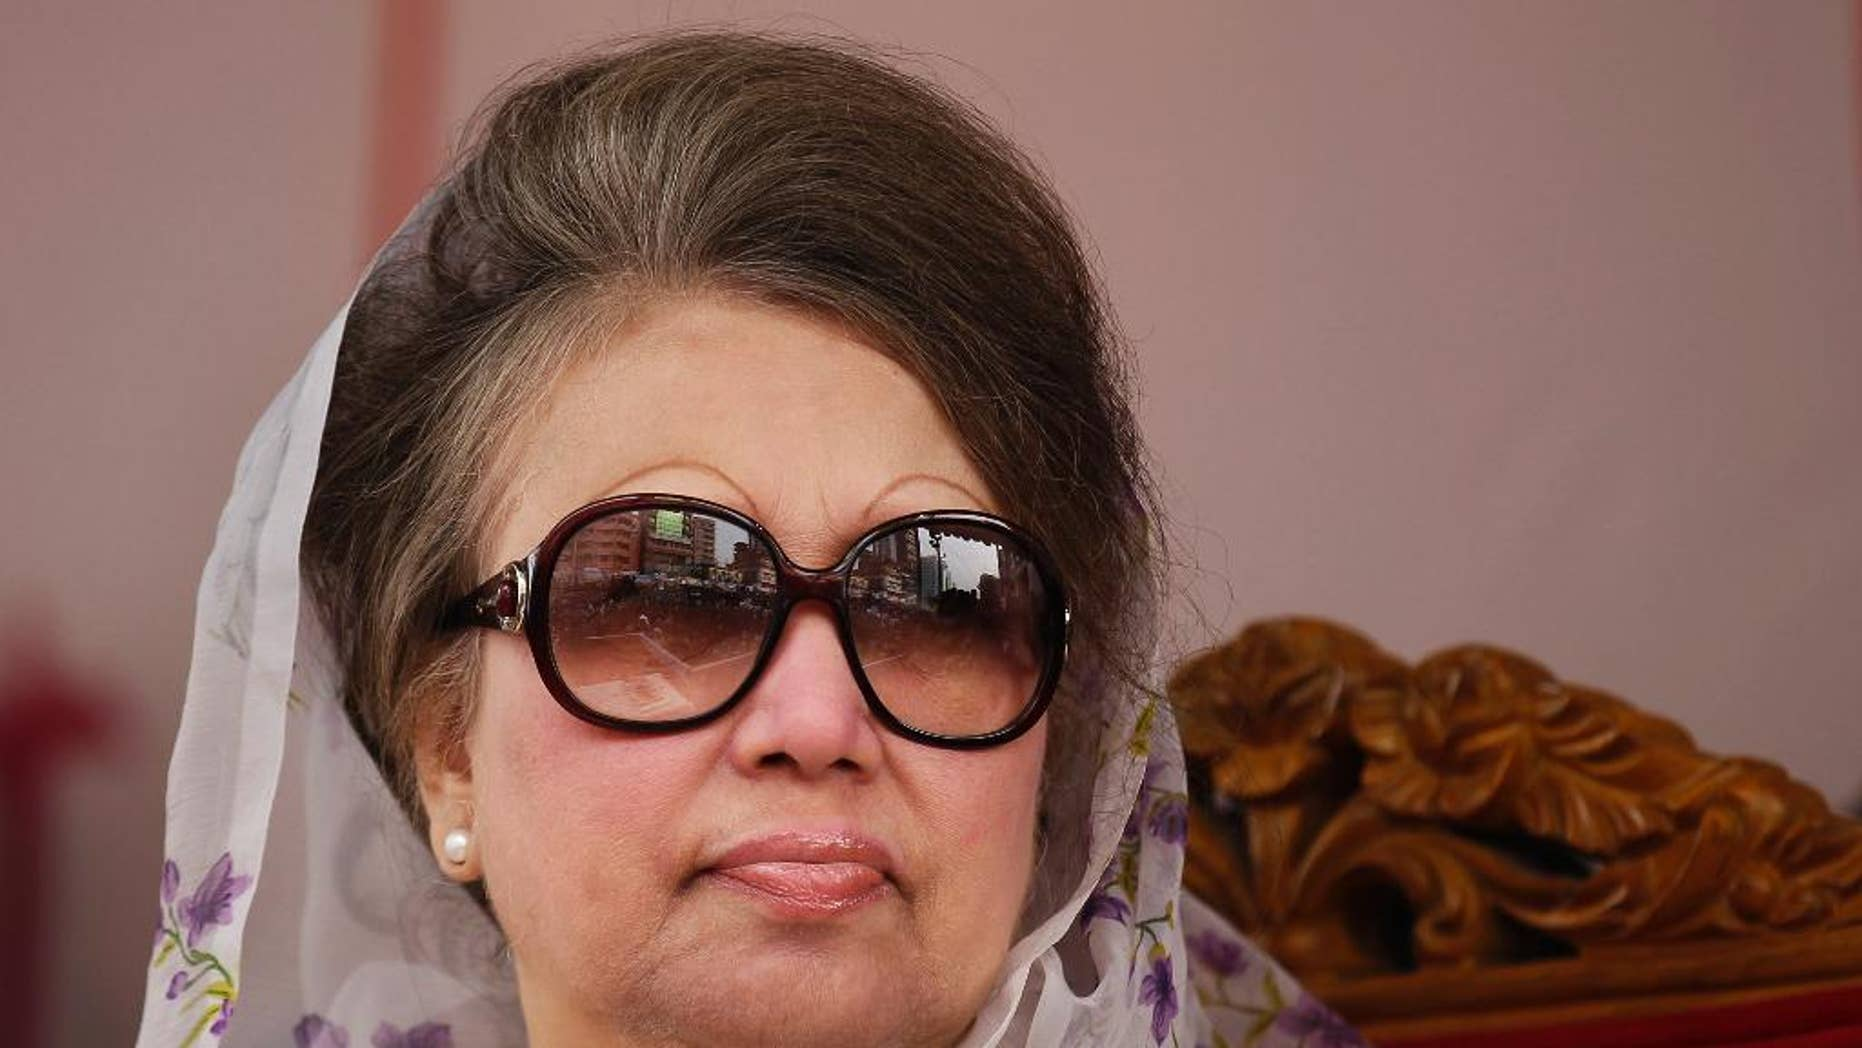 FILE-In this Jan. 5, 2016 file photo, Bangladesh's former prime minister and Bangladesh Nationalist Party (BNP) leader Khaleda Zia, looks on at a protest rally to mark the second anniversary of a general election boycotted by a major opposition alliance in Dhaka, Bangladesh. Police in Bangladesh questioned a prominent journalist and close aide of opposition leader and ex-Prime Minister Khaleda Zia over the weekend for his alleged role in a conspiracy to kidnap the only son of the current prime minister. (AP Photo/ A.M. Ahad, File)